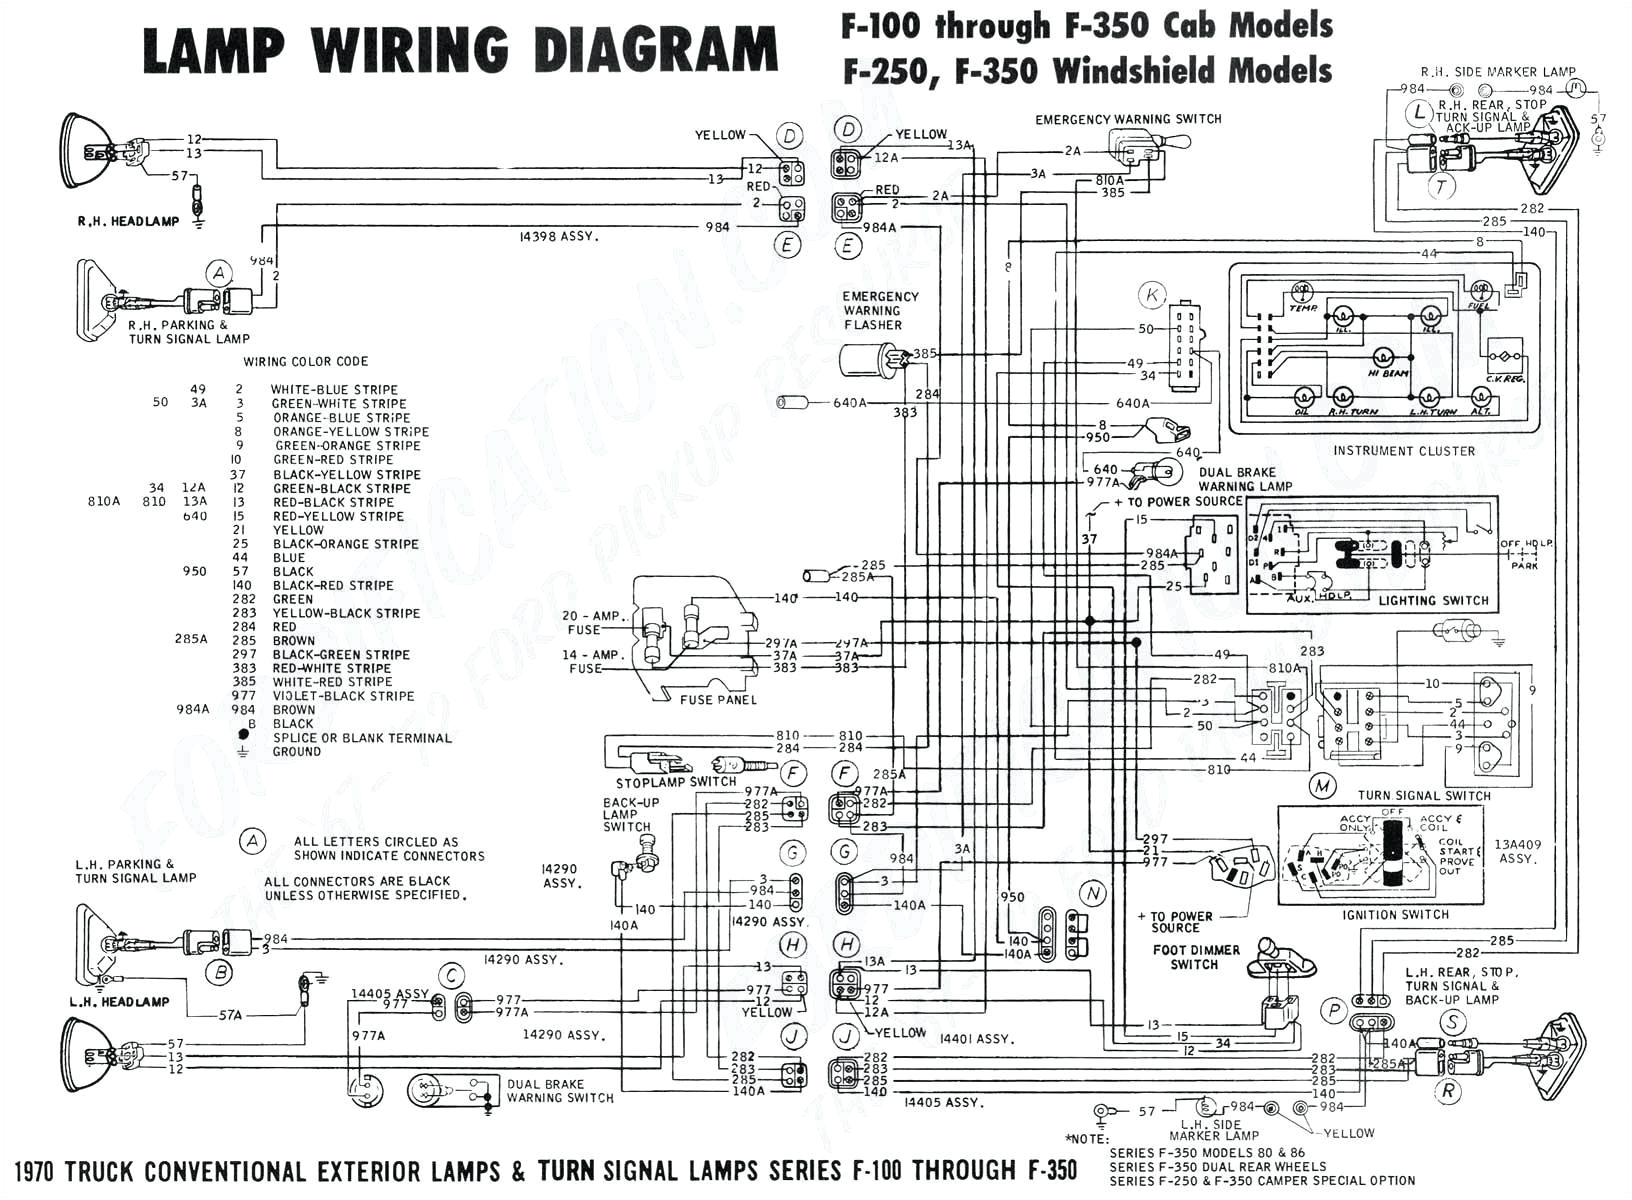 Land Rover Discovery 1 Wiring Diagram Rover P2 Wiring Diagram Wiring Diagram Blog